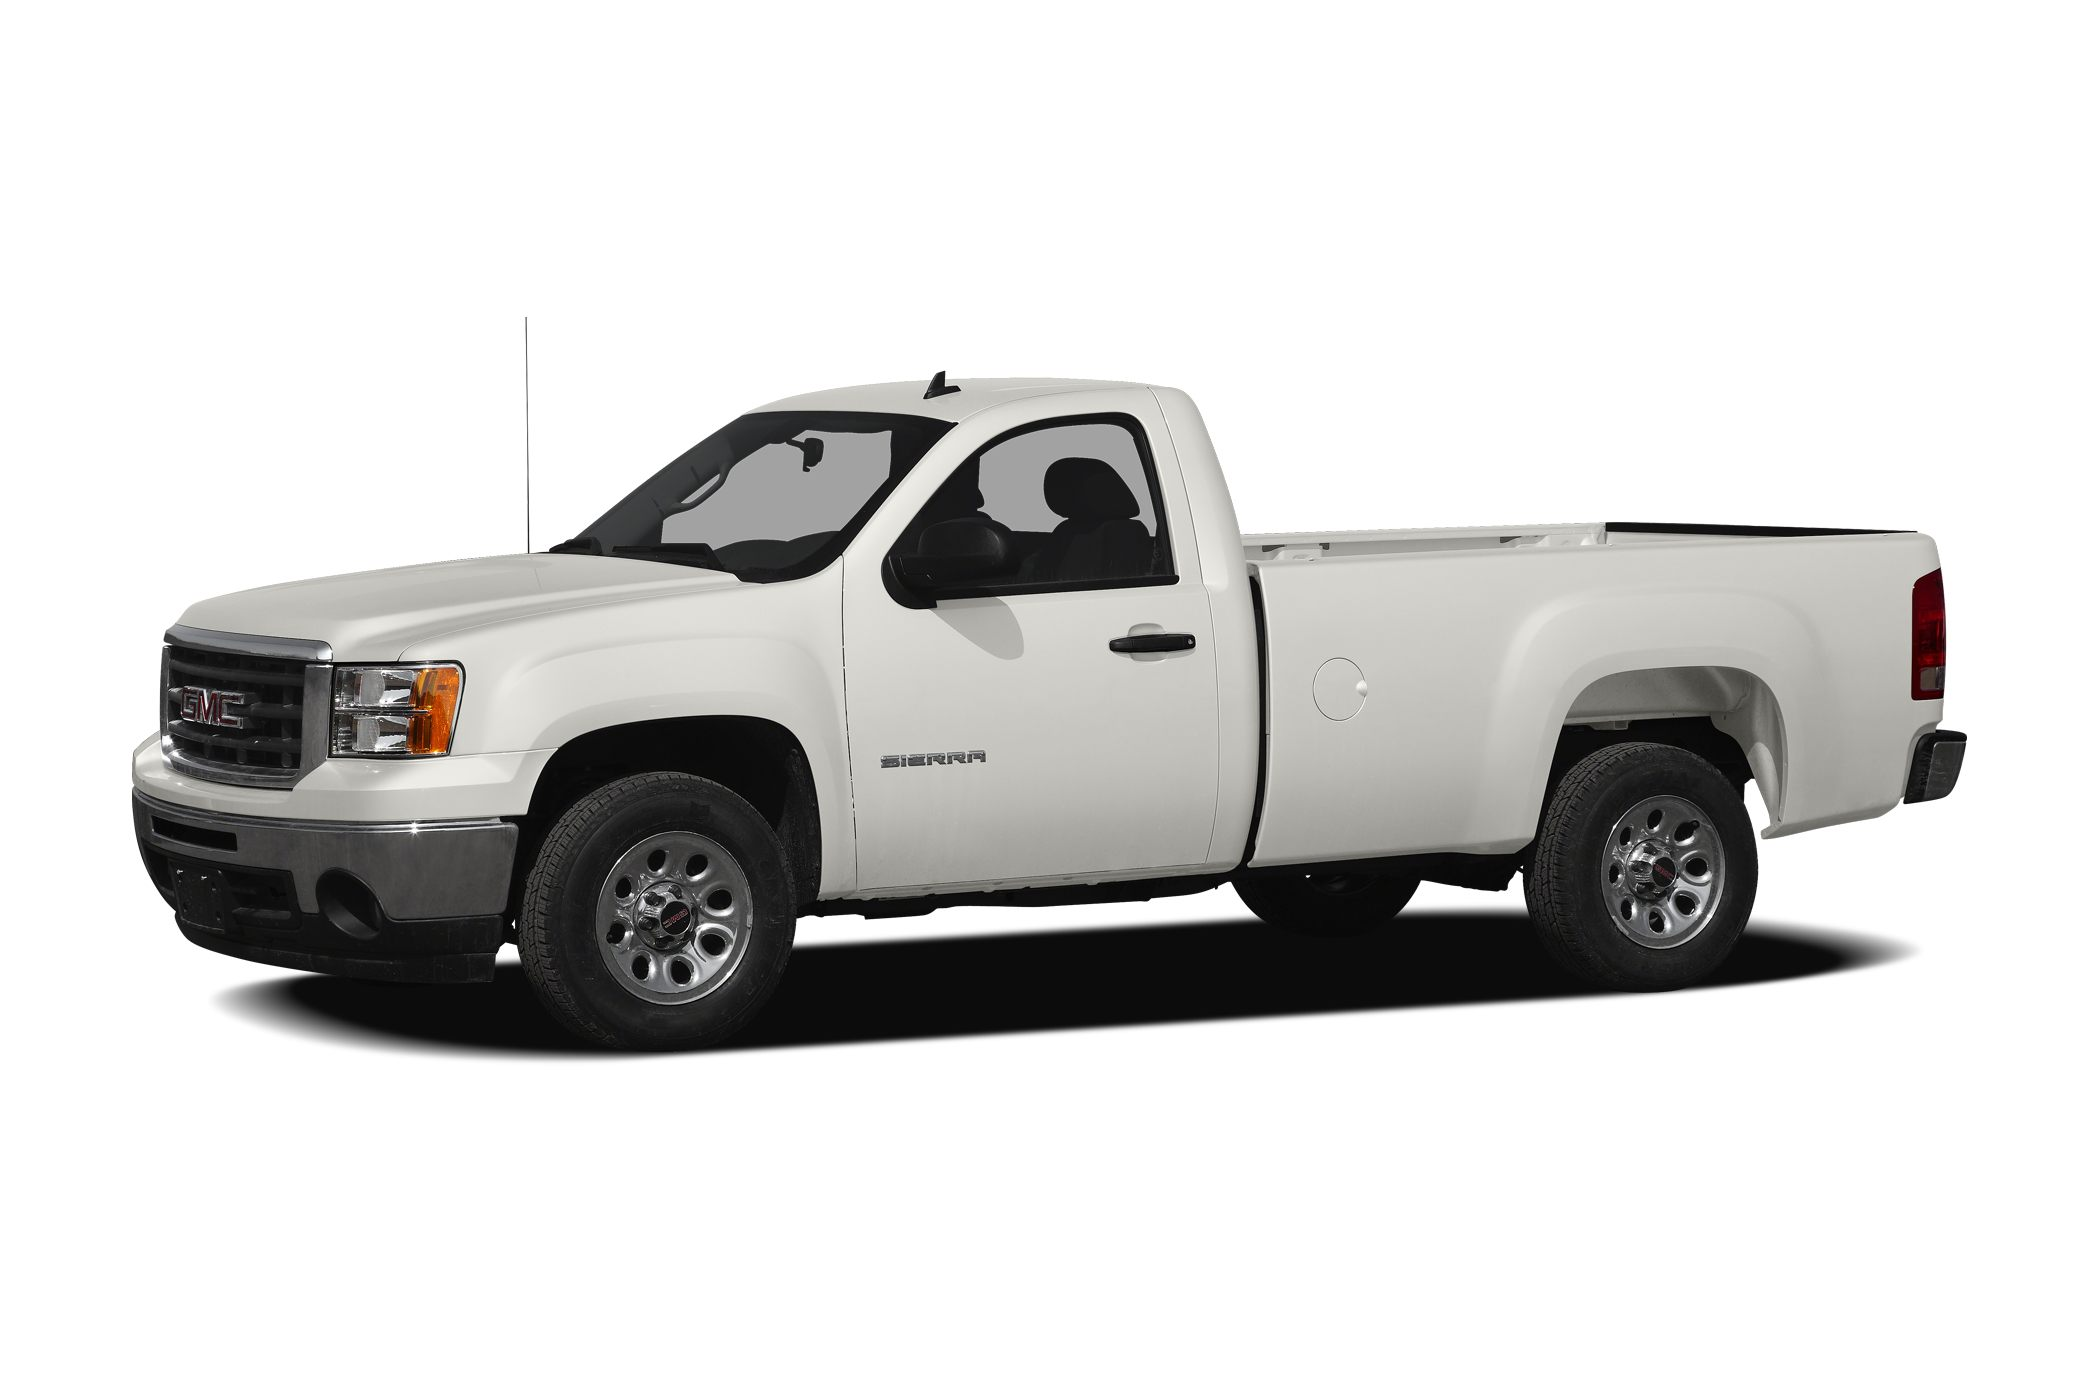 2012 GMC Sierra 1500 SLE Crew Cab Pickup for sale in Kilgore for $28,681 with 1 miles.